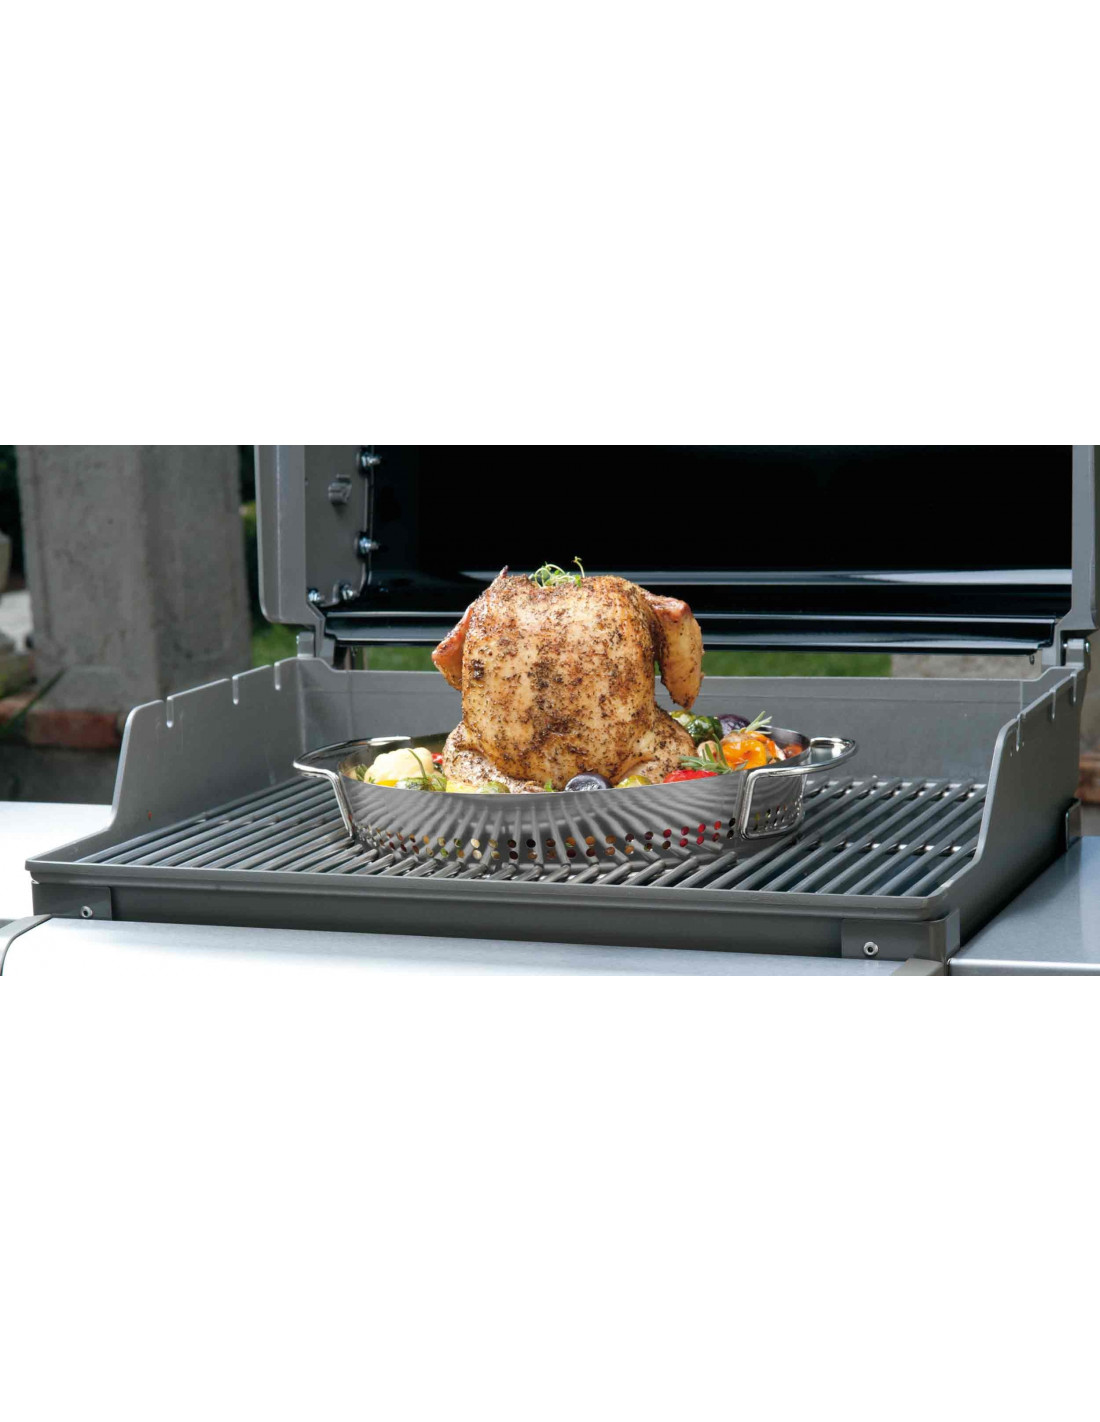 Accessoire barbecue support cuisson poulet weber gourmet - Poulet barbecue weber ...